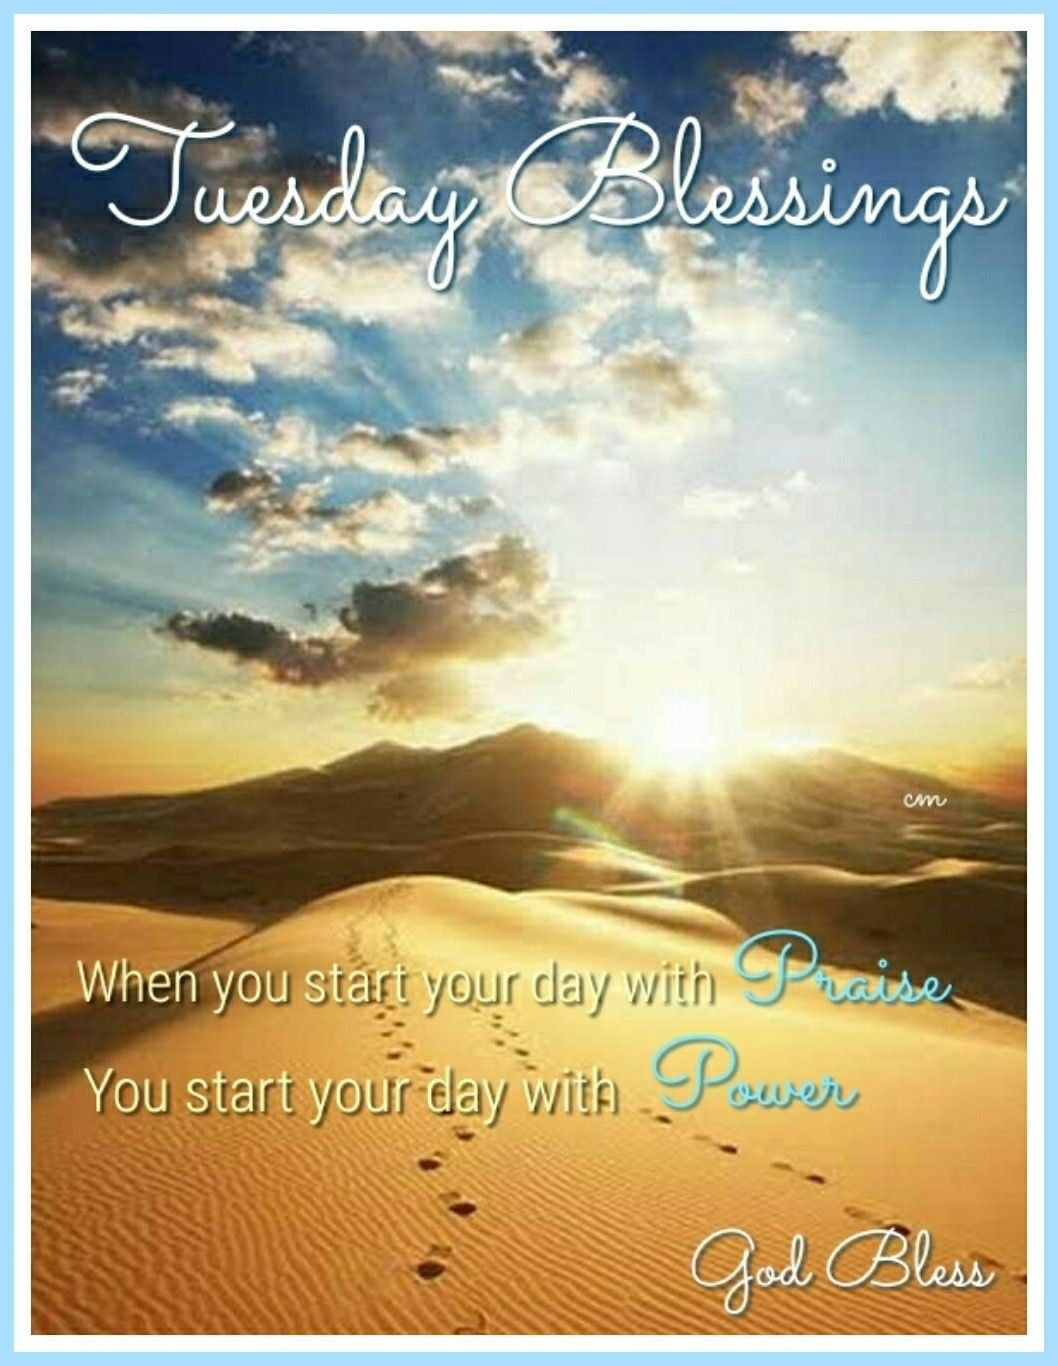 Happy Tuesday God Bless You At Every Step Blessed Good Morning Post Tuesday Images